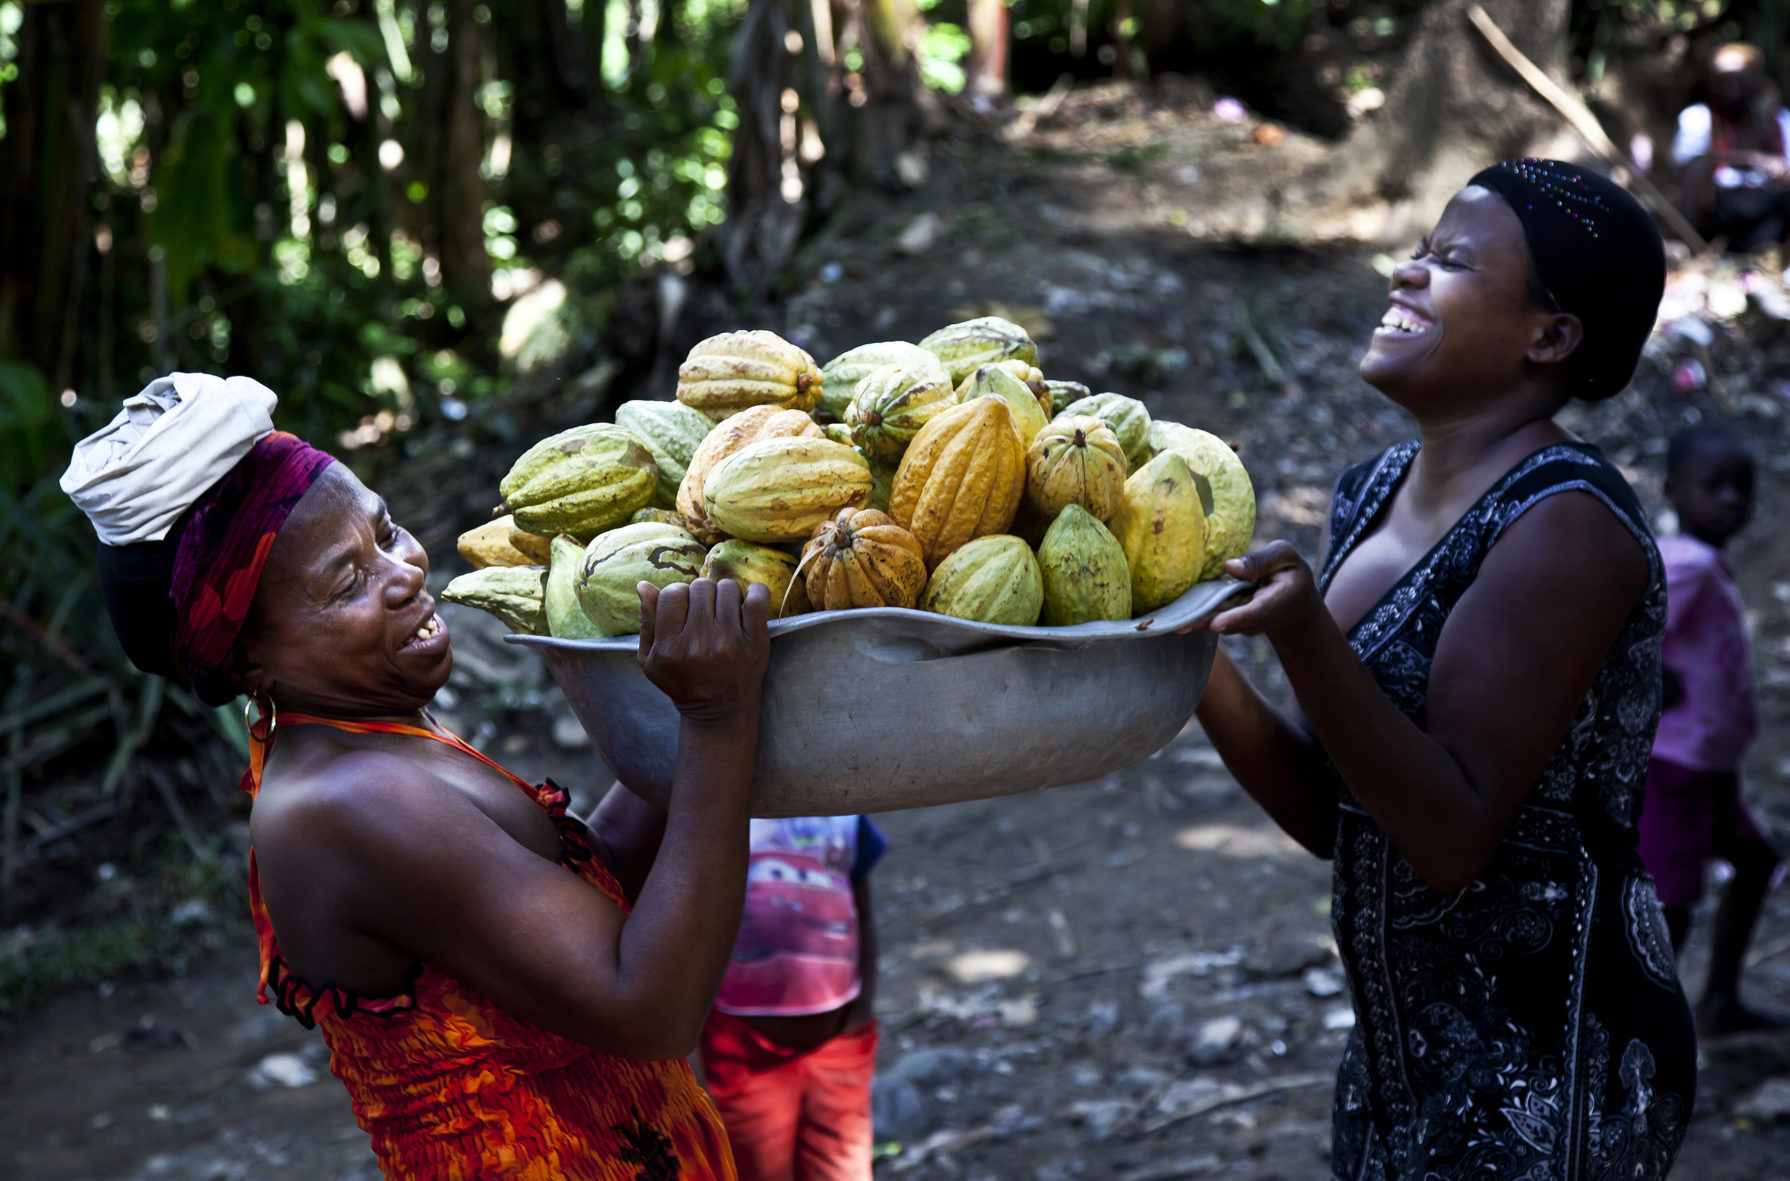 A photograph of people holding cocoa pods in Haiti.